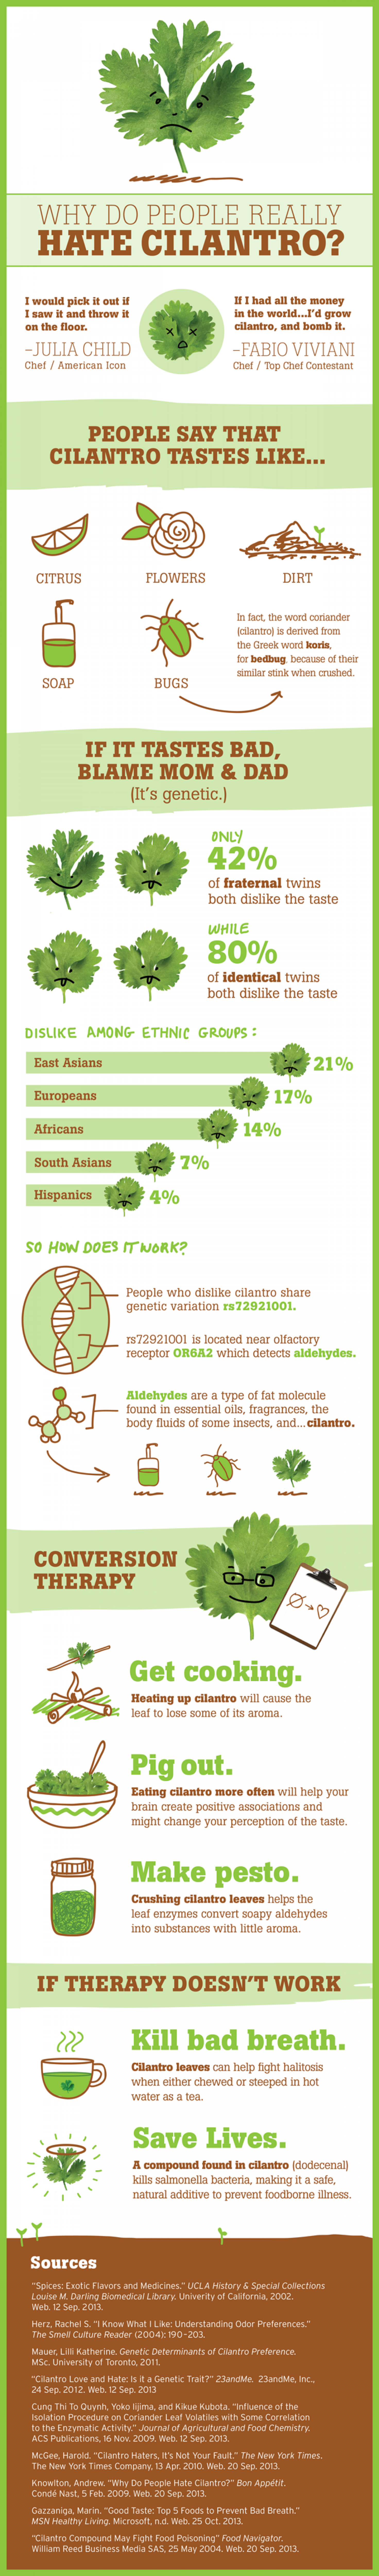 Why Do People Really Hate Cilantro? Infographic